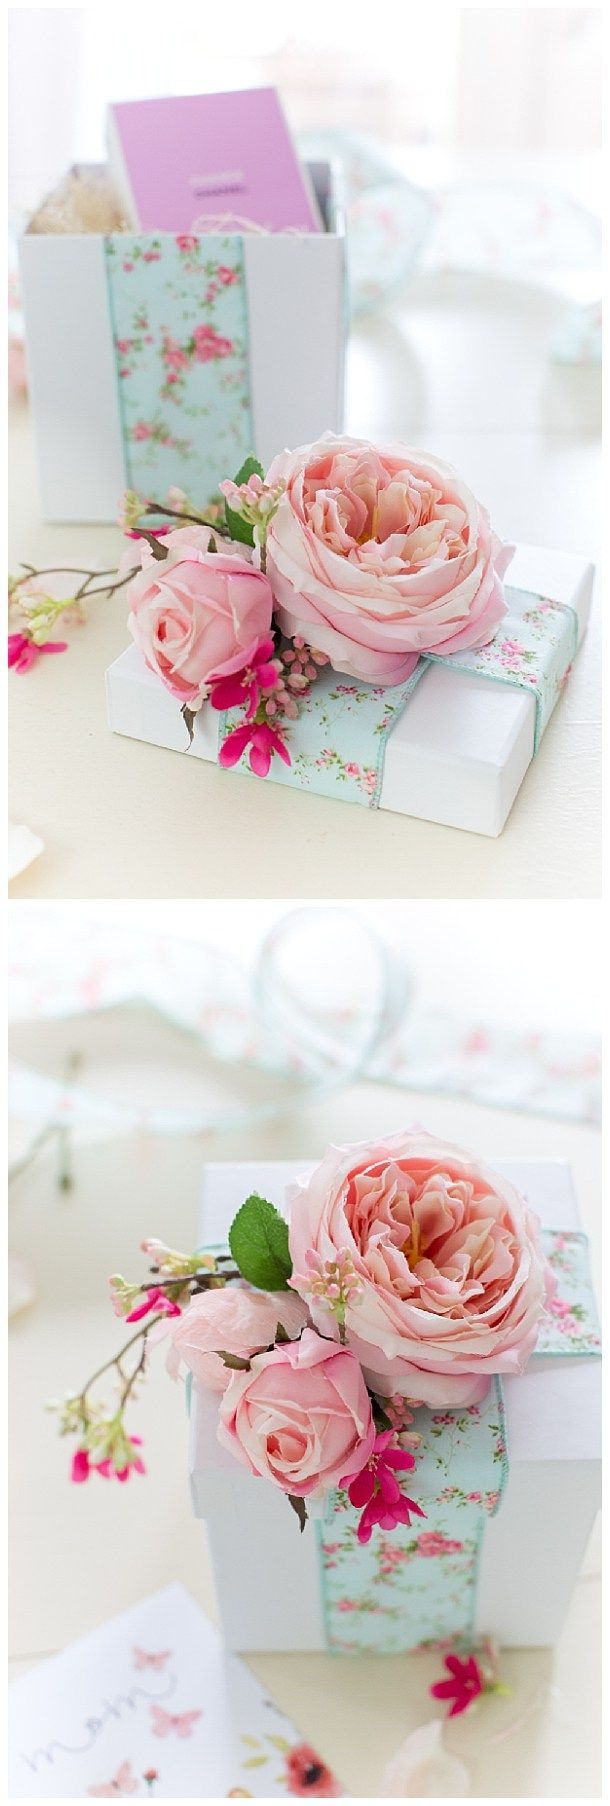 447 Best Lovely Images On Pinterest Beautiful Gardens Flower Mooi Printing Premium Sweater Top Garden Bunny S The Diy Gift Toppers Pretty And Easy Handmade Wrapping Ideas For Christmas Birthdays Holidays Or Presents Any Special Occasion